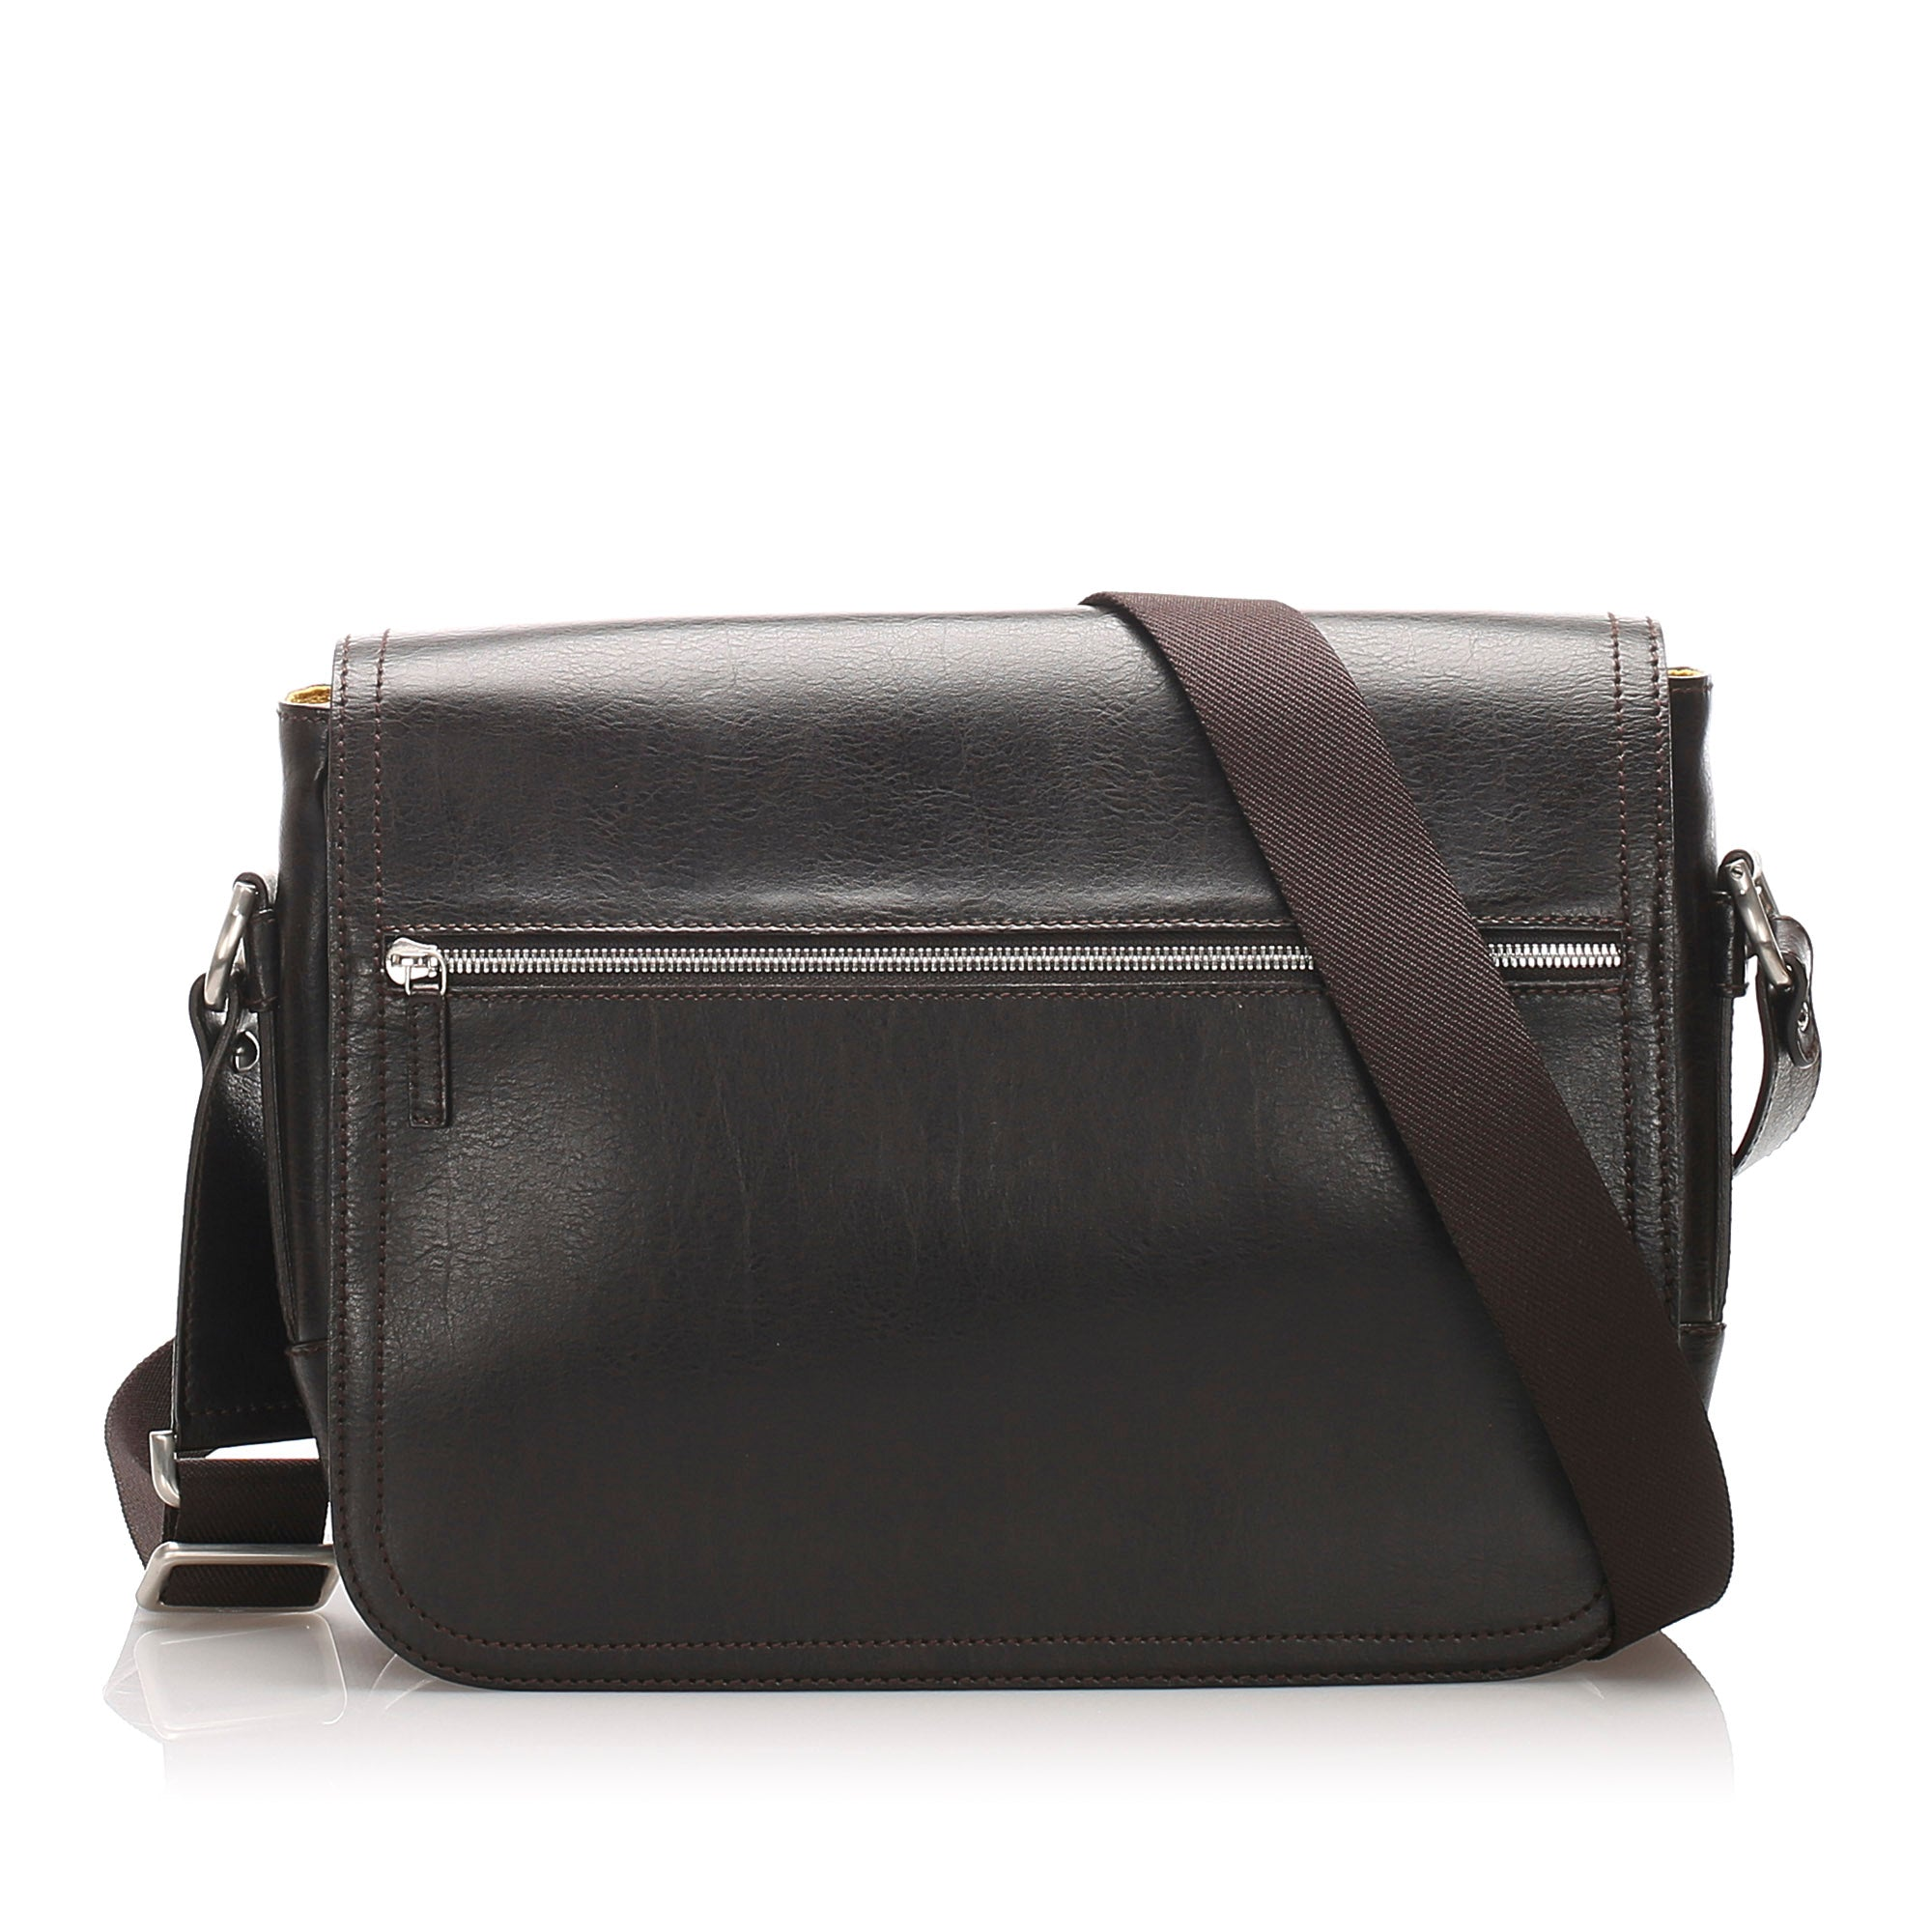 Ferragamo Black Leather Shoulder Bag